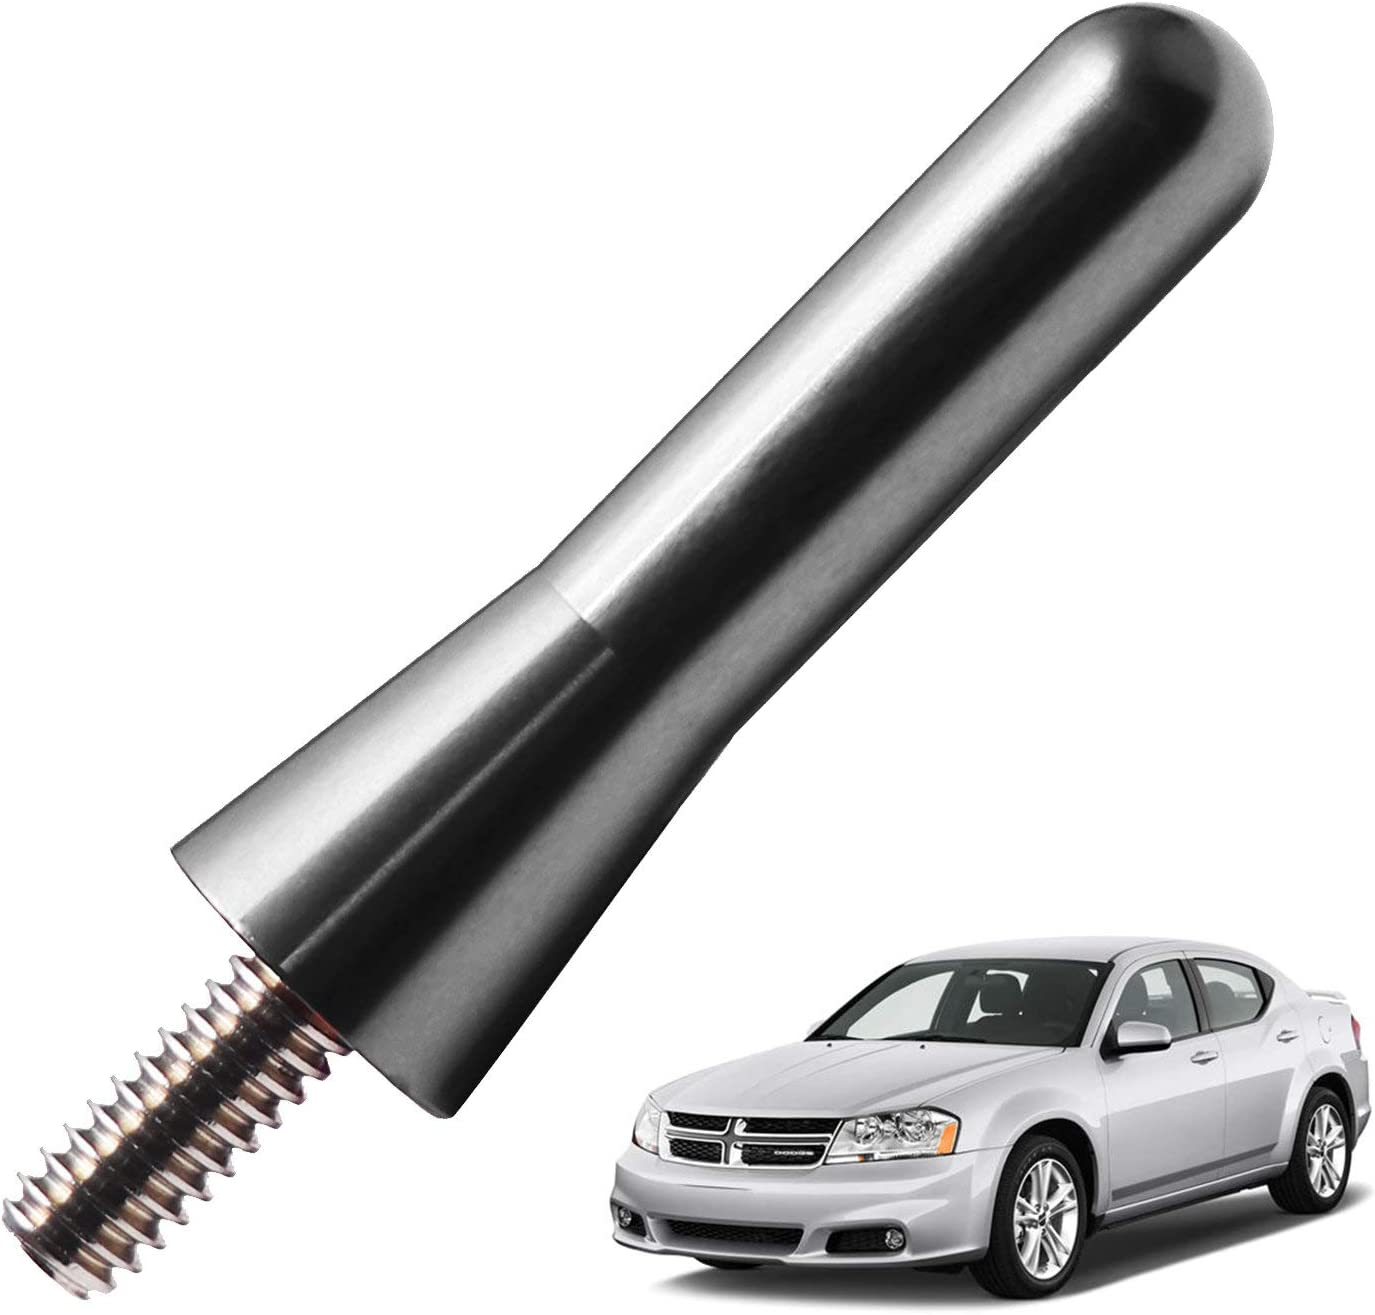 JAPower Replacement Antenna Compatible with BMW Z3 and Z4 1995-2016 2 inches-Titanium